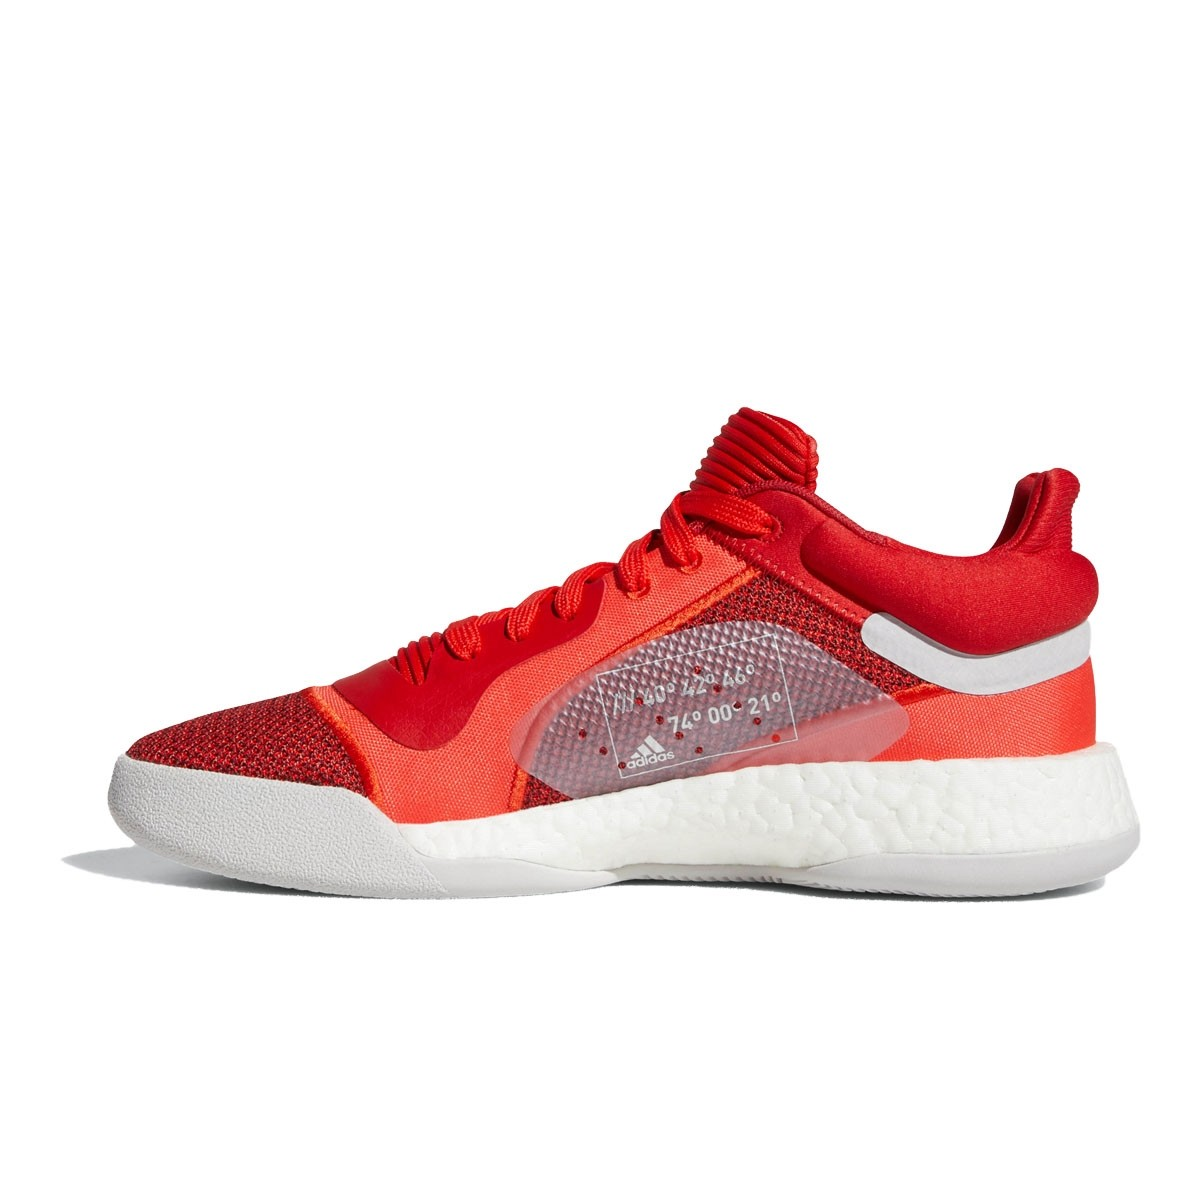 ADIDAS Marquee Boost Low 'Red Scarlet' F36305